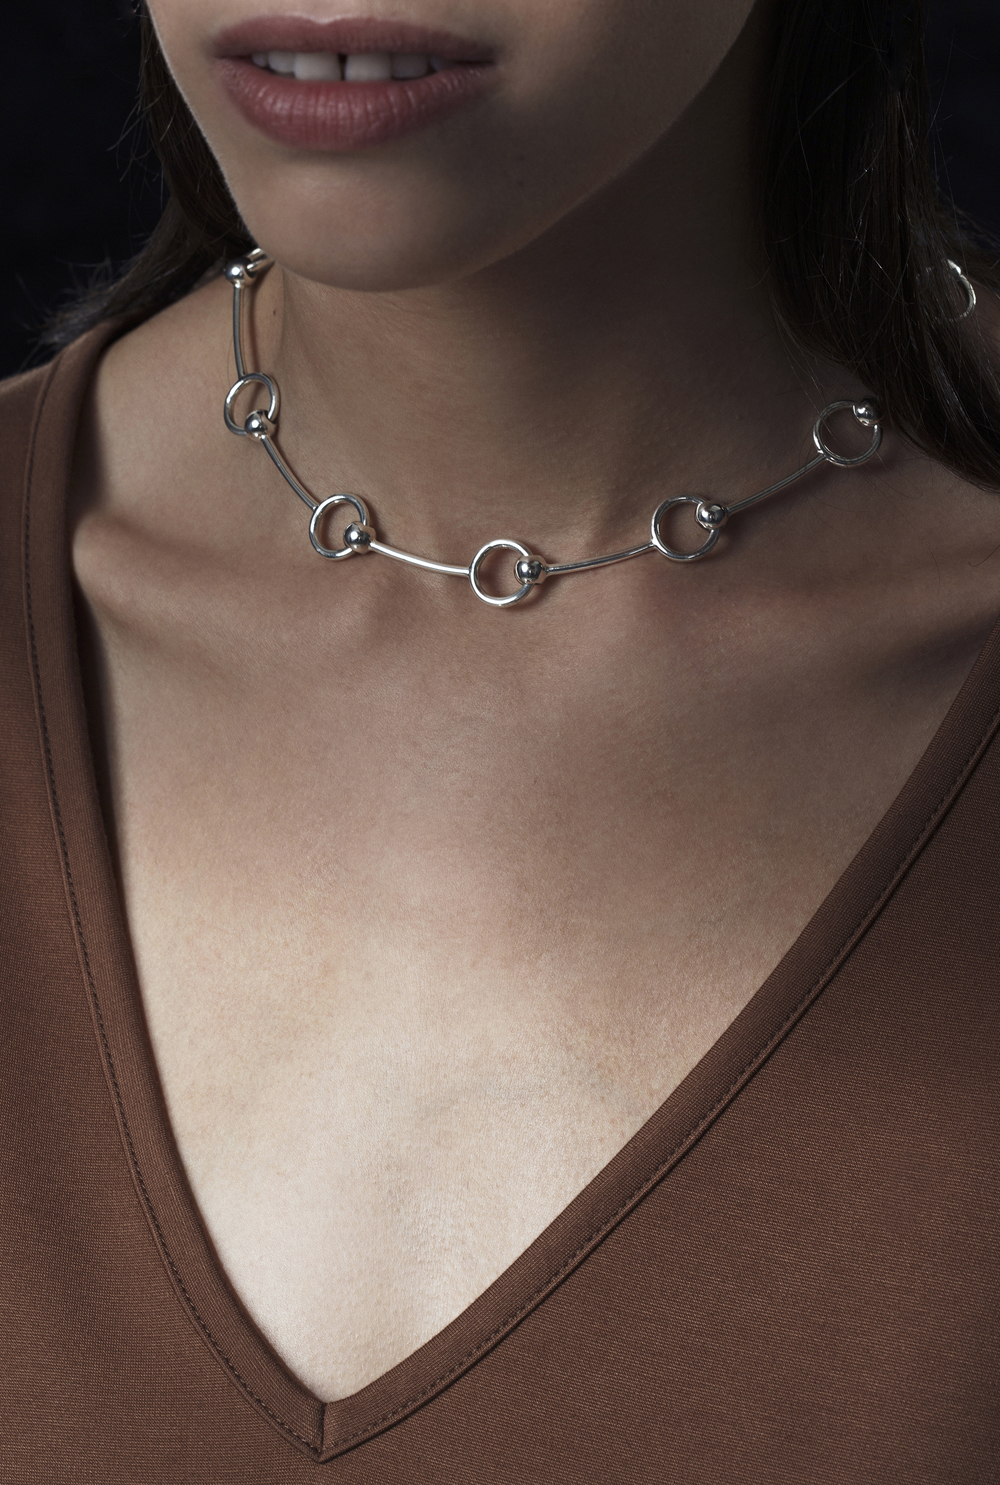 01-bfr_by-michael-topyol_sphere-necklace_1420-nis